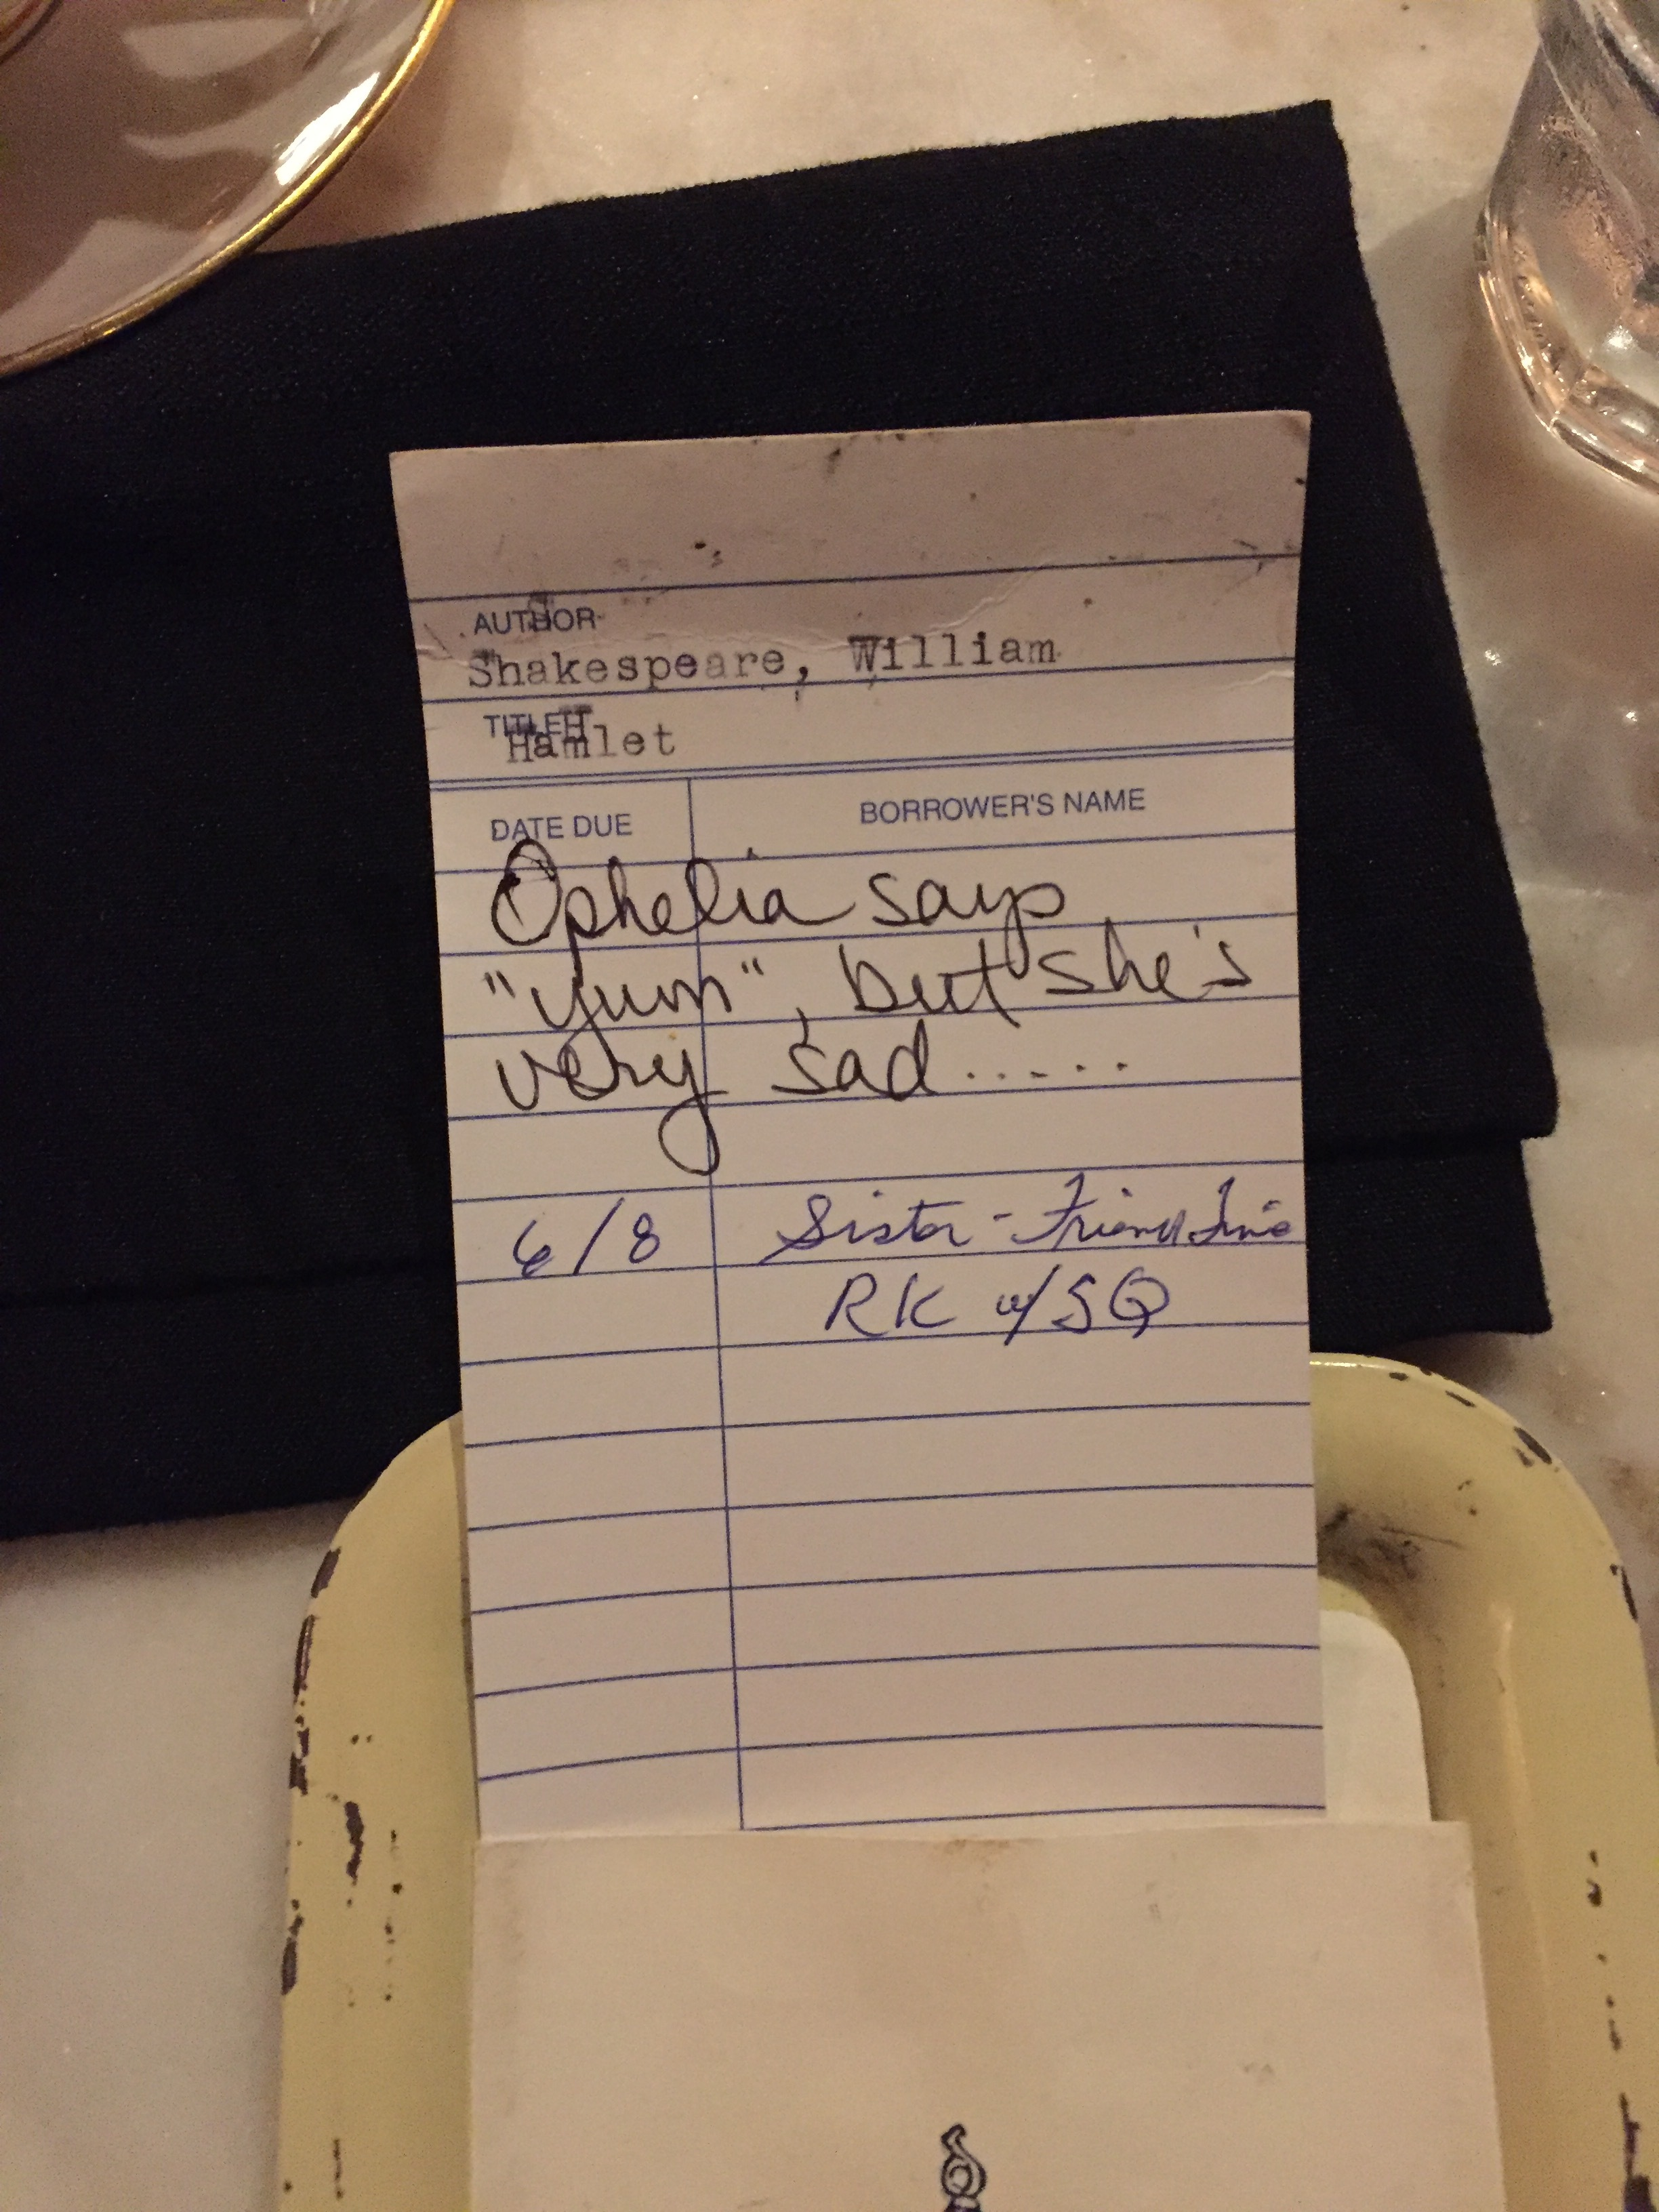 """[image description: a better look at the library checkout card. Someone has written """"Ophelia says 'yum' but she's very sad..."""" and another person has signed and dated the card. (The date is recent, so it's definitely a restaurant patron and not an old library patron.)]"""